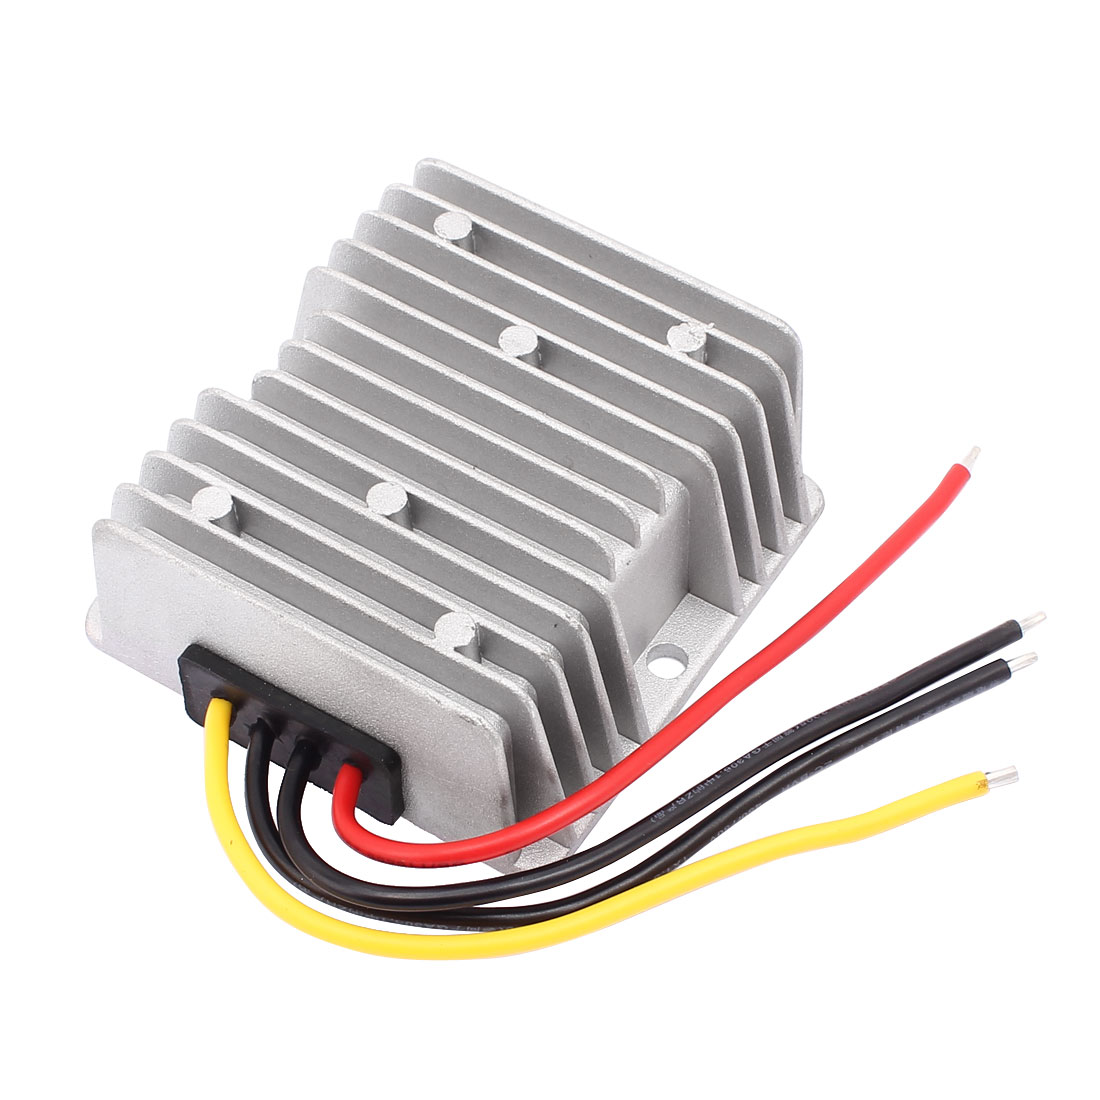 DC24V(10V-36V) to DC24V 4A 96W Booster Waterproof Car Power Converter Regulator Transformer